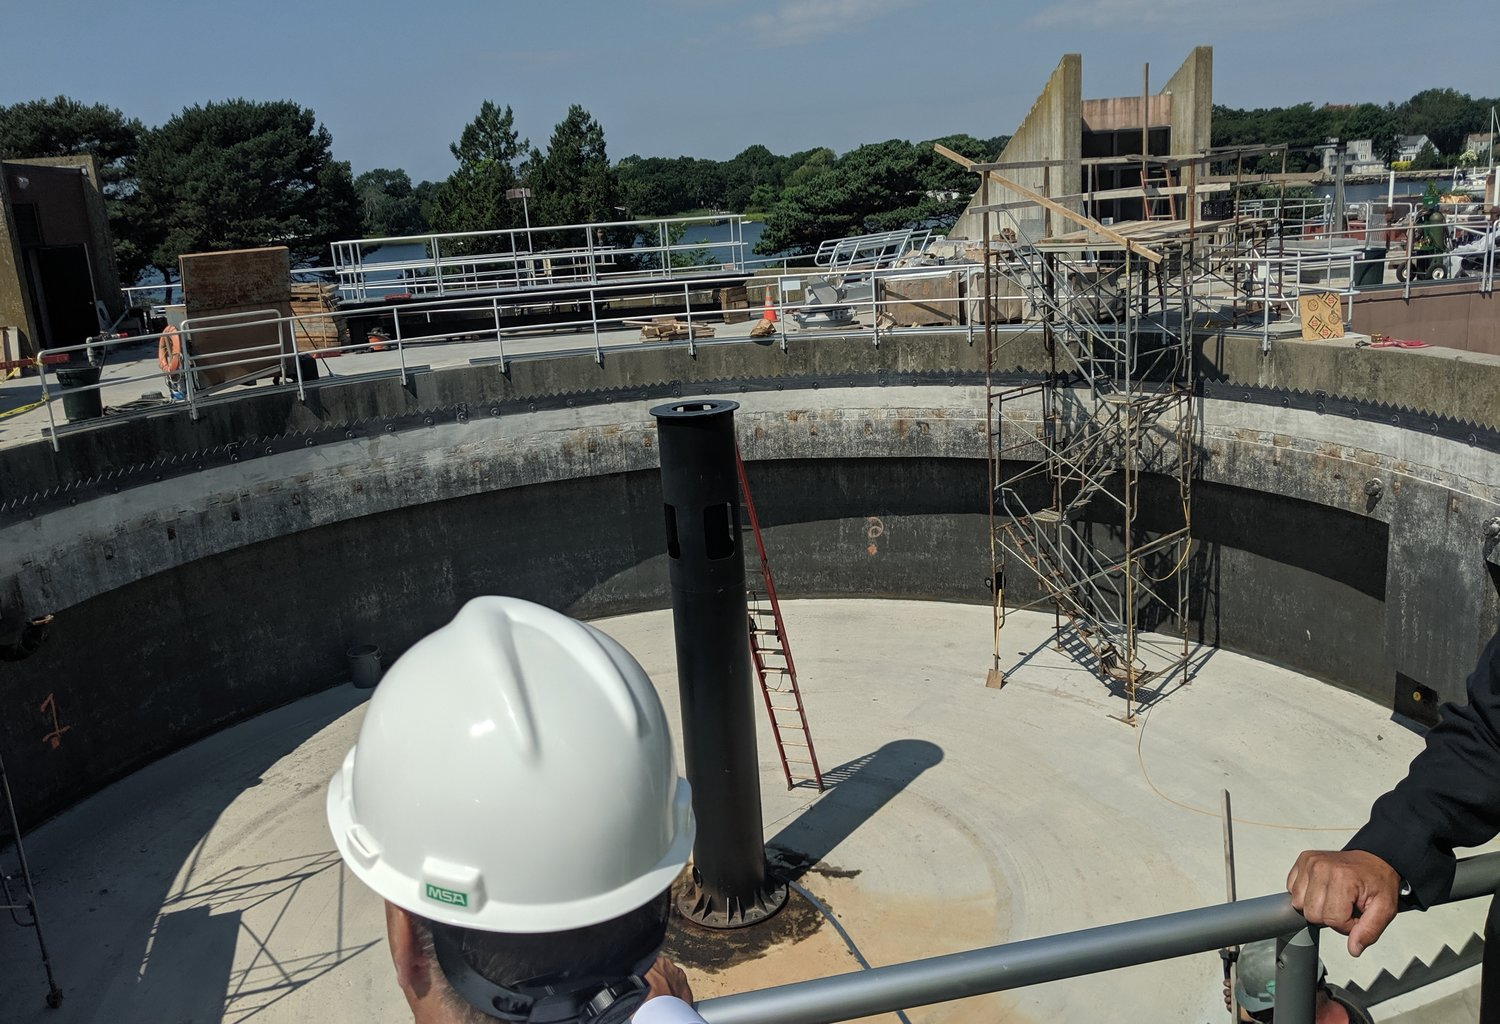 A solid-waste separation tank at the sewage treatment plant in Warren, R.I., was raised to 16 feet to withstand a 100-year storm and sea-level rise. (Tim Faulkner/ecoRI News)